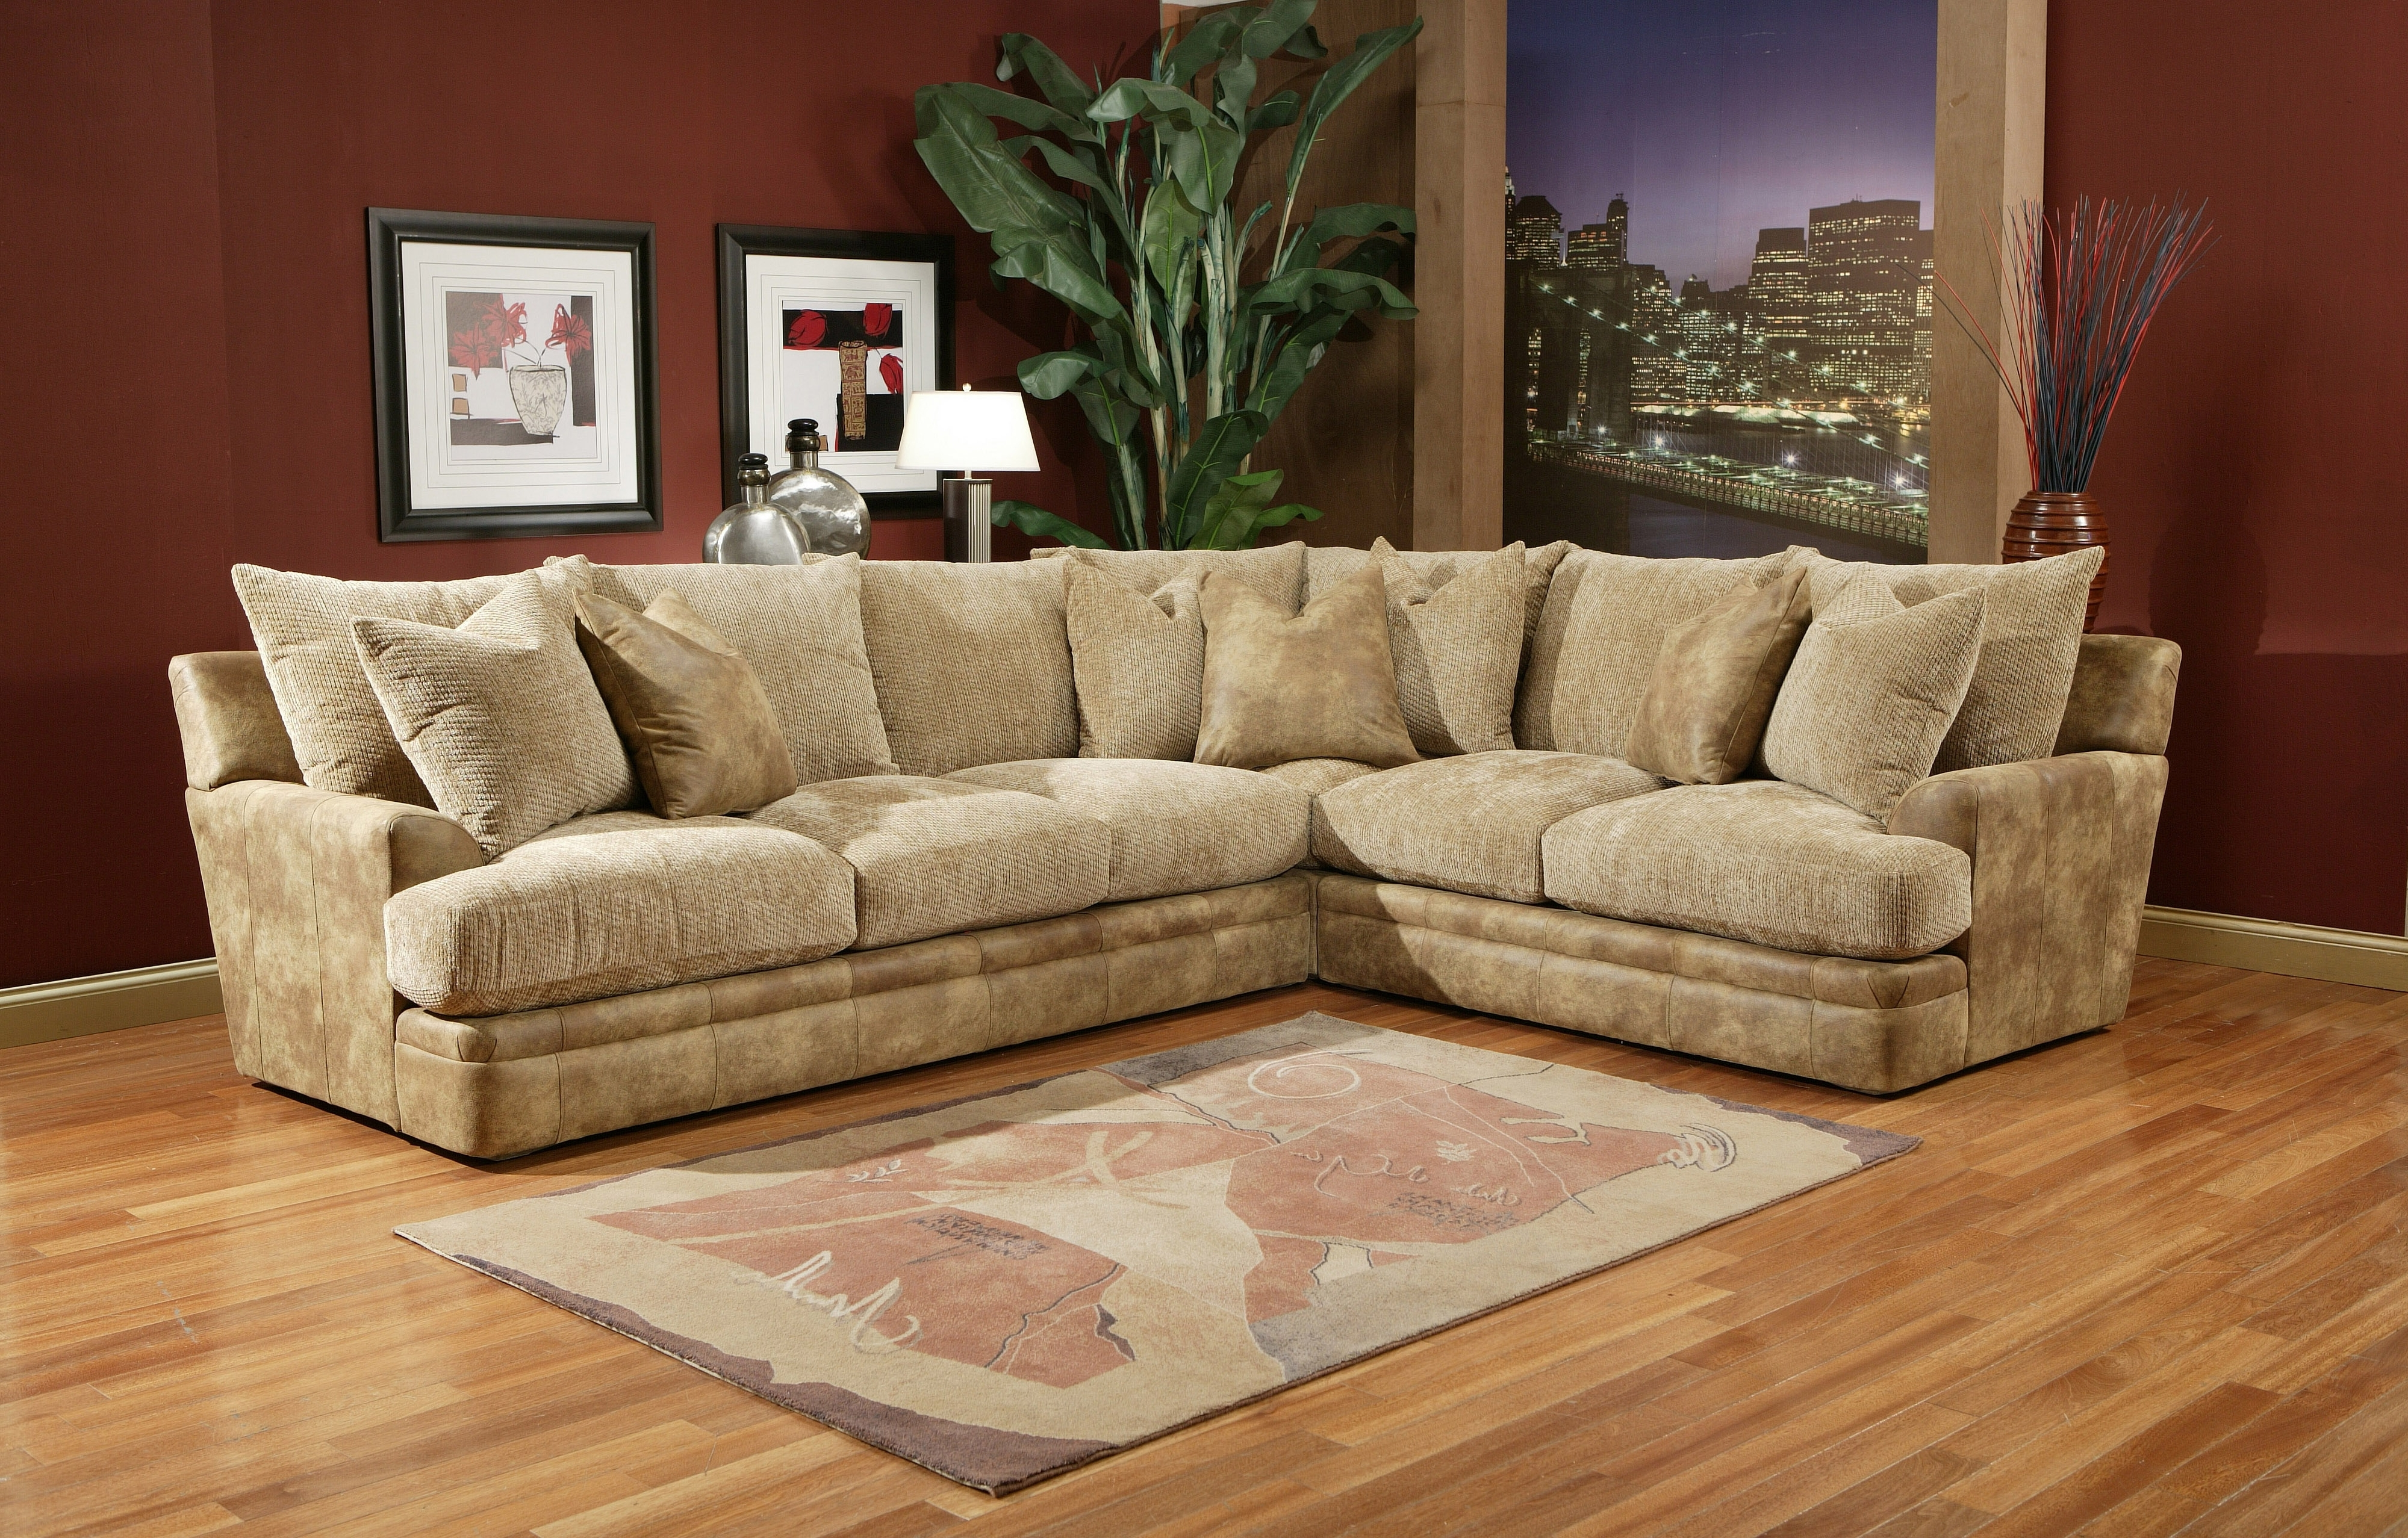 Orange County Ca Sectional Sofas With Regard To Most Recent Down Filled Sectional Sofa – Cleanupflorida (View 9 of 20)